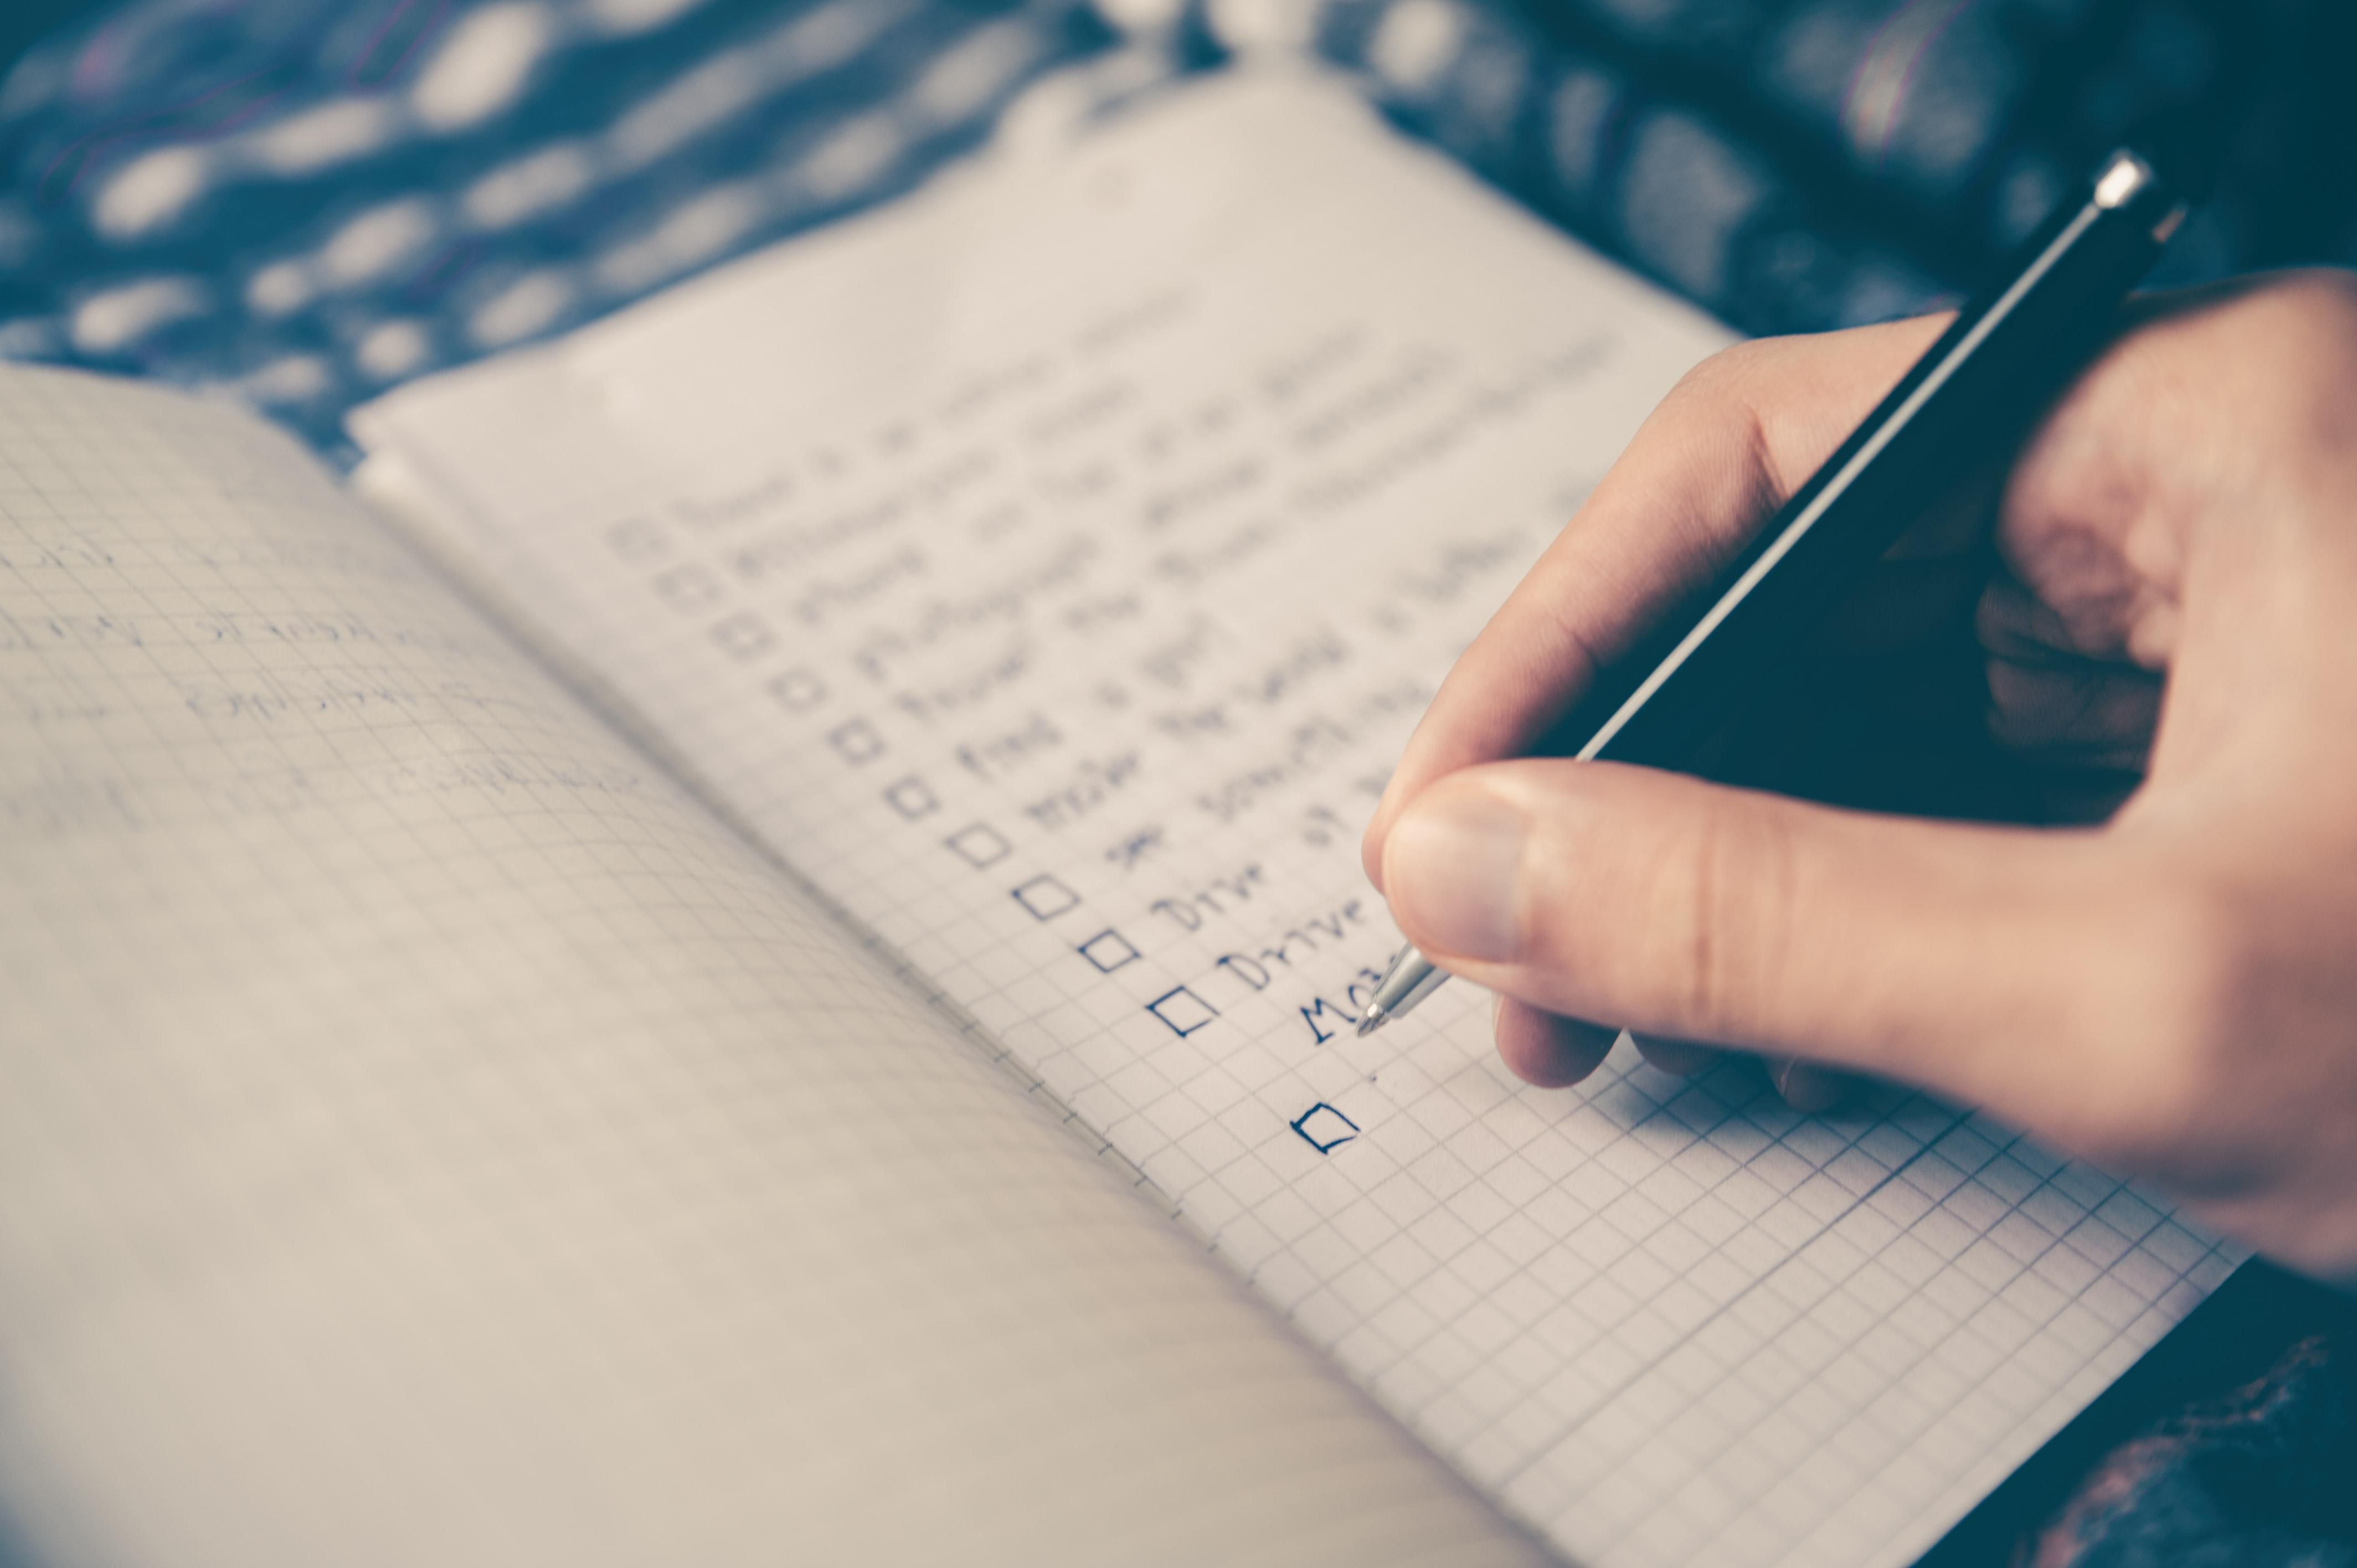 3 Items From My Summer Bucket List - And They're Not What You'd Think